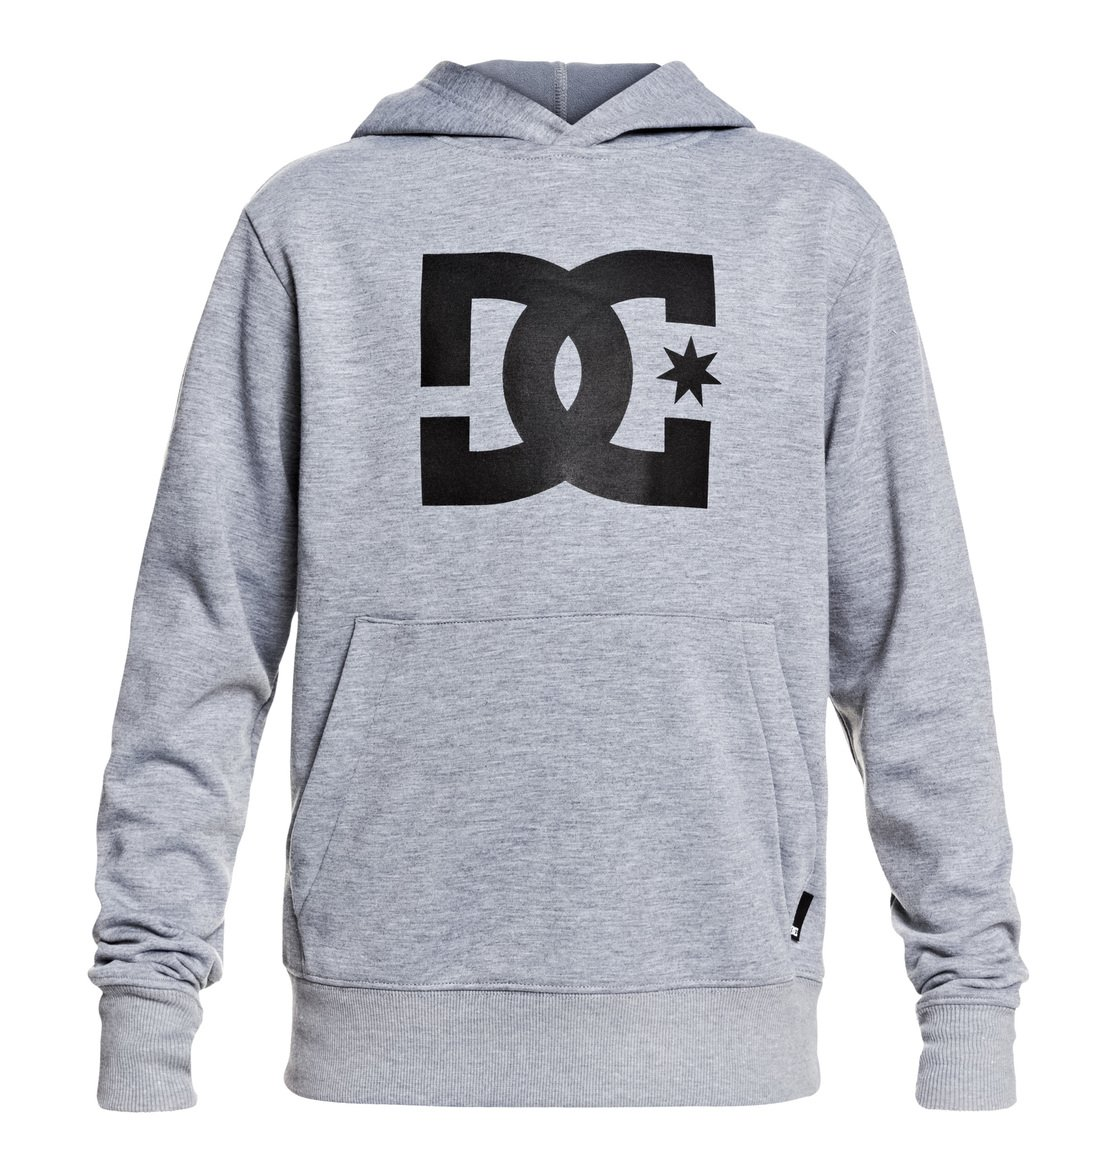 Dc Boys For Edbft03144 Technical Snowstar Hoodie 16 Gray Shoes 0 8 nwSZAxAW